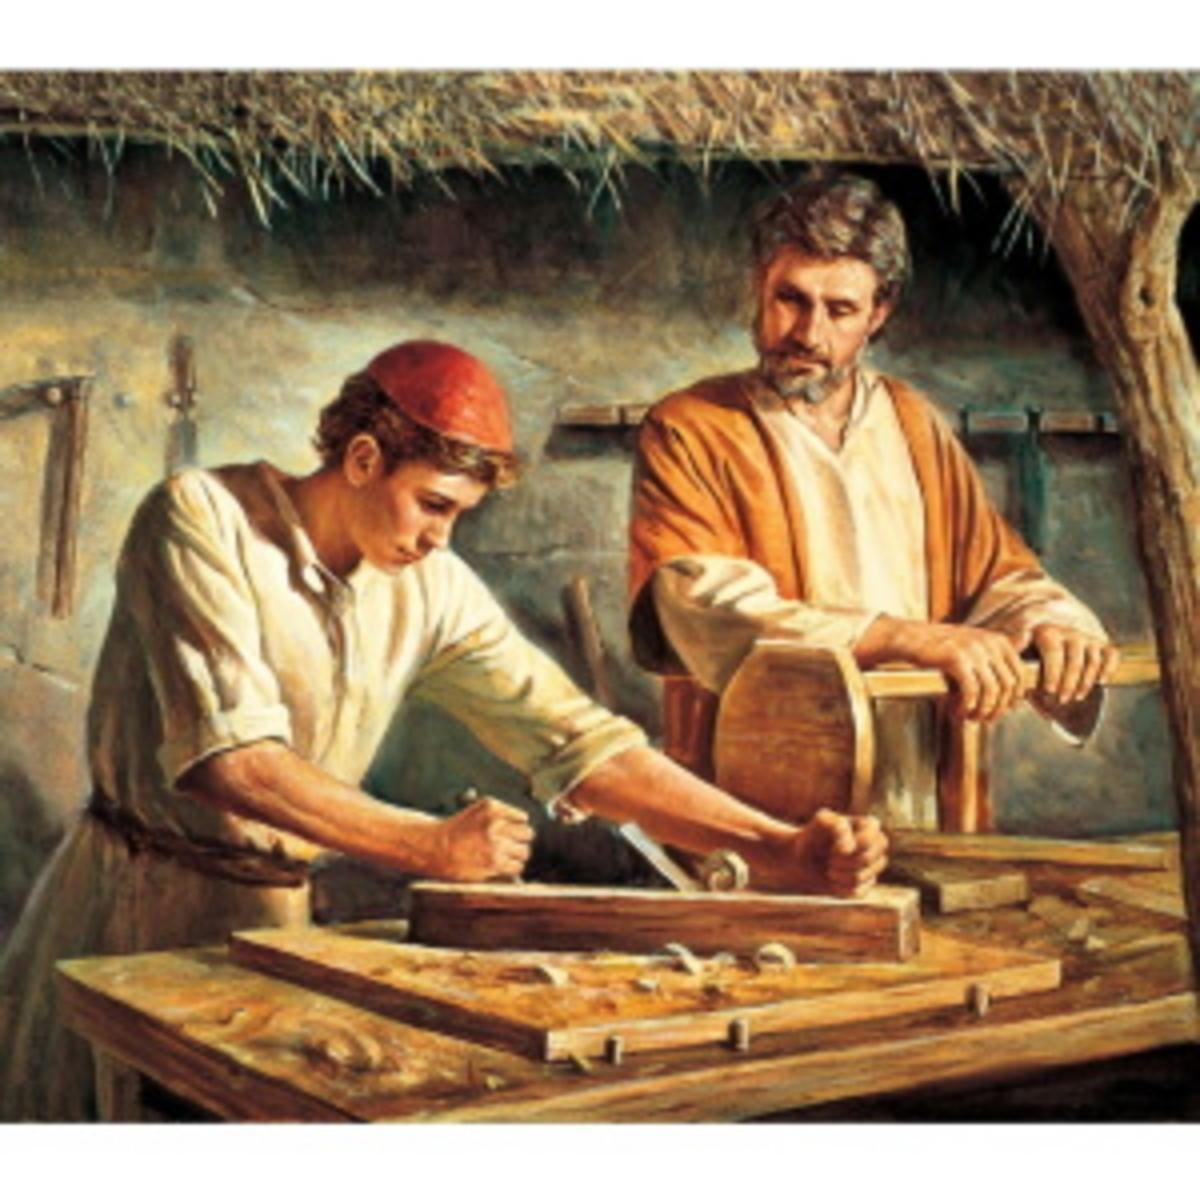 Carpenter's son